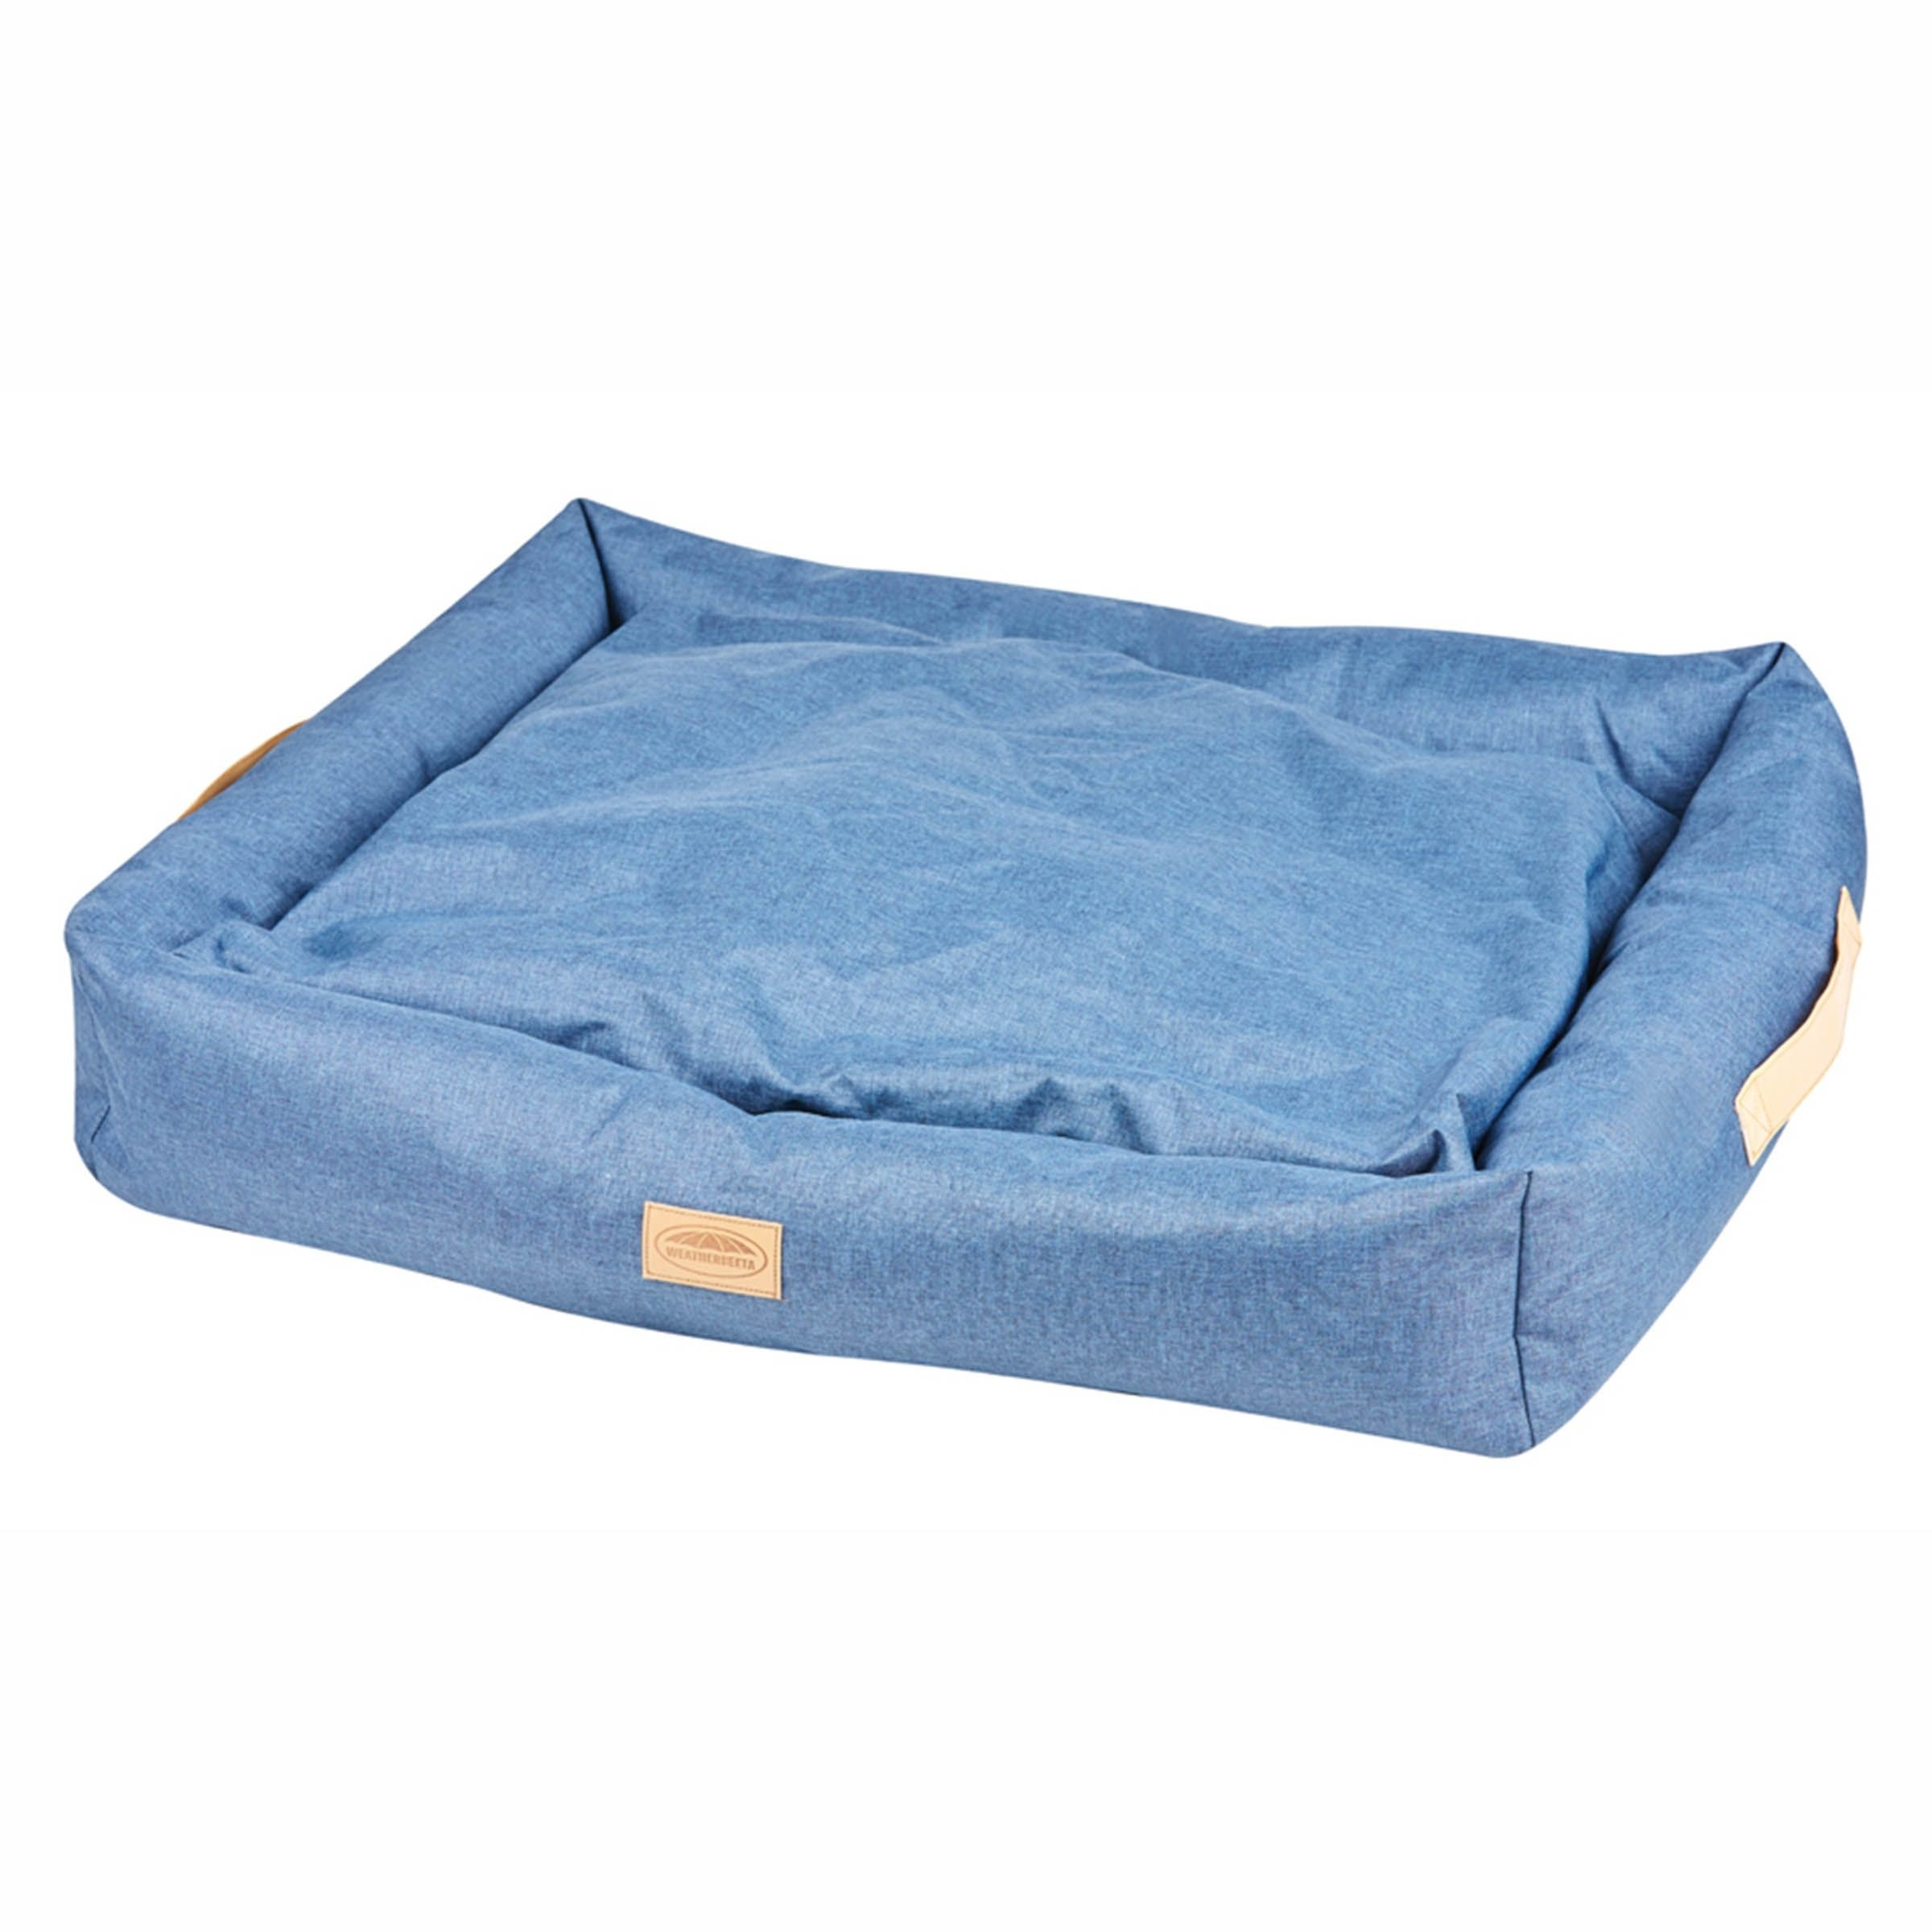 Weatherbeeta Square Denim Dog Bed  - Thomas Irving's equestrian and accessories store  Weatherbeeta Square Denim Dog Bed